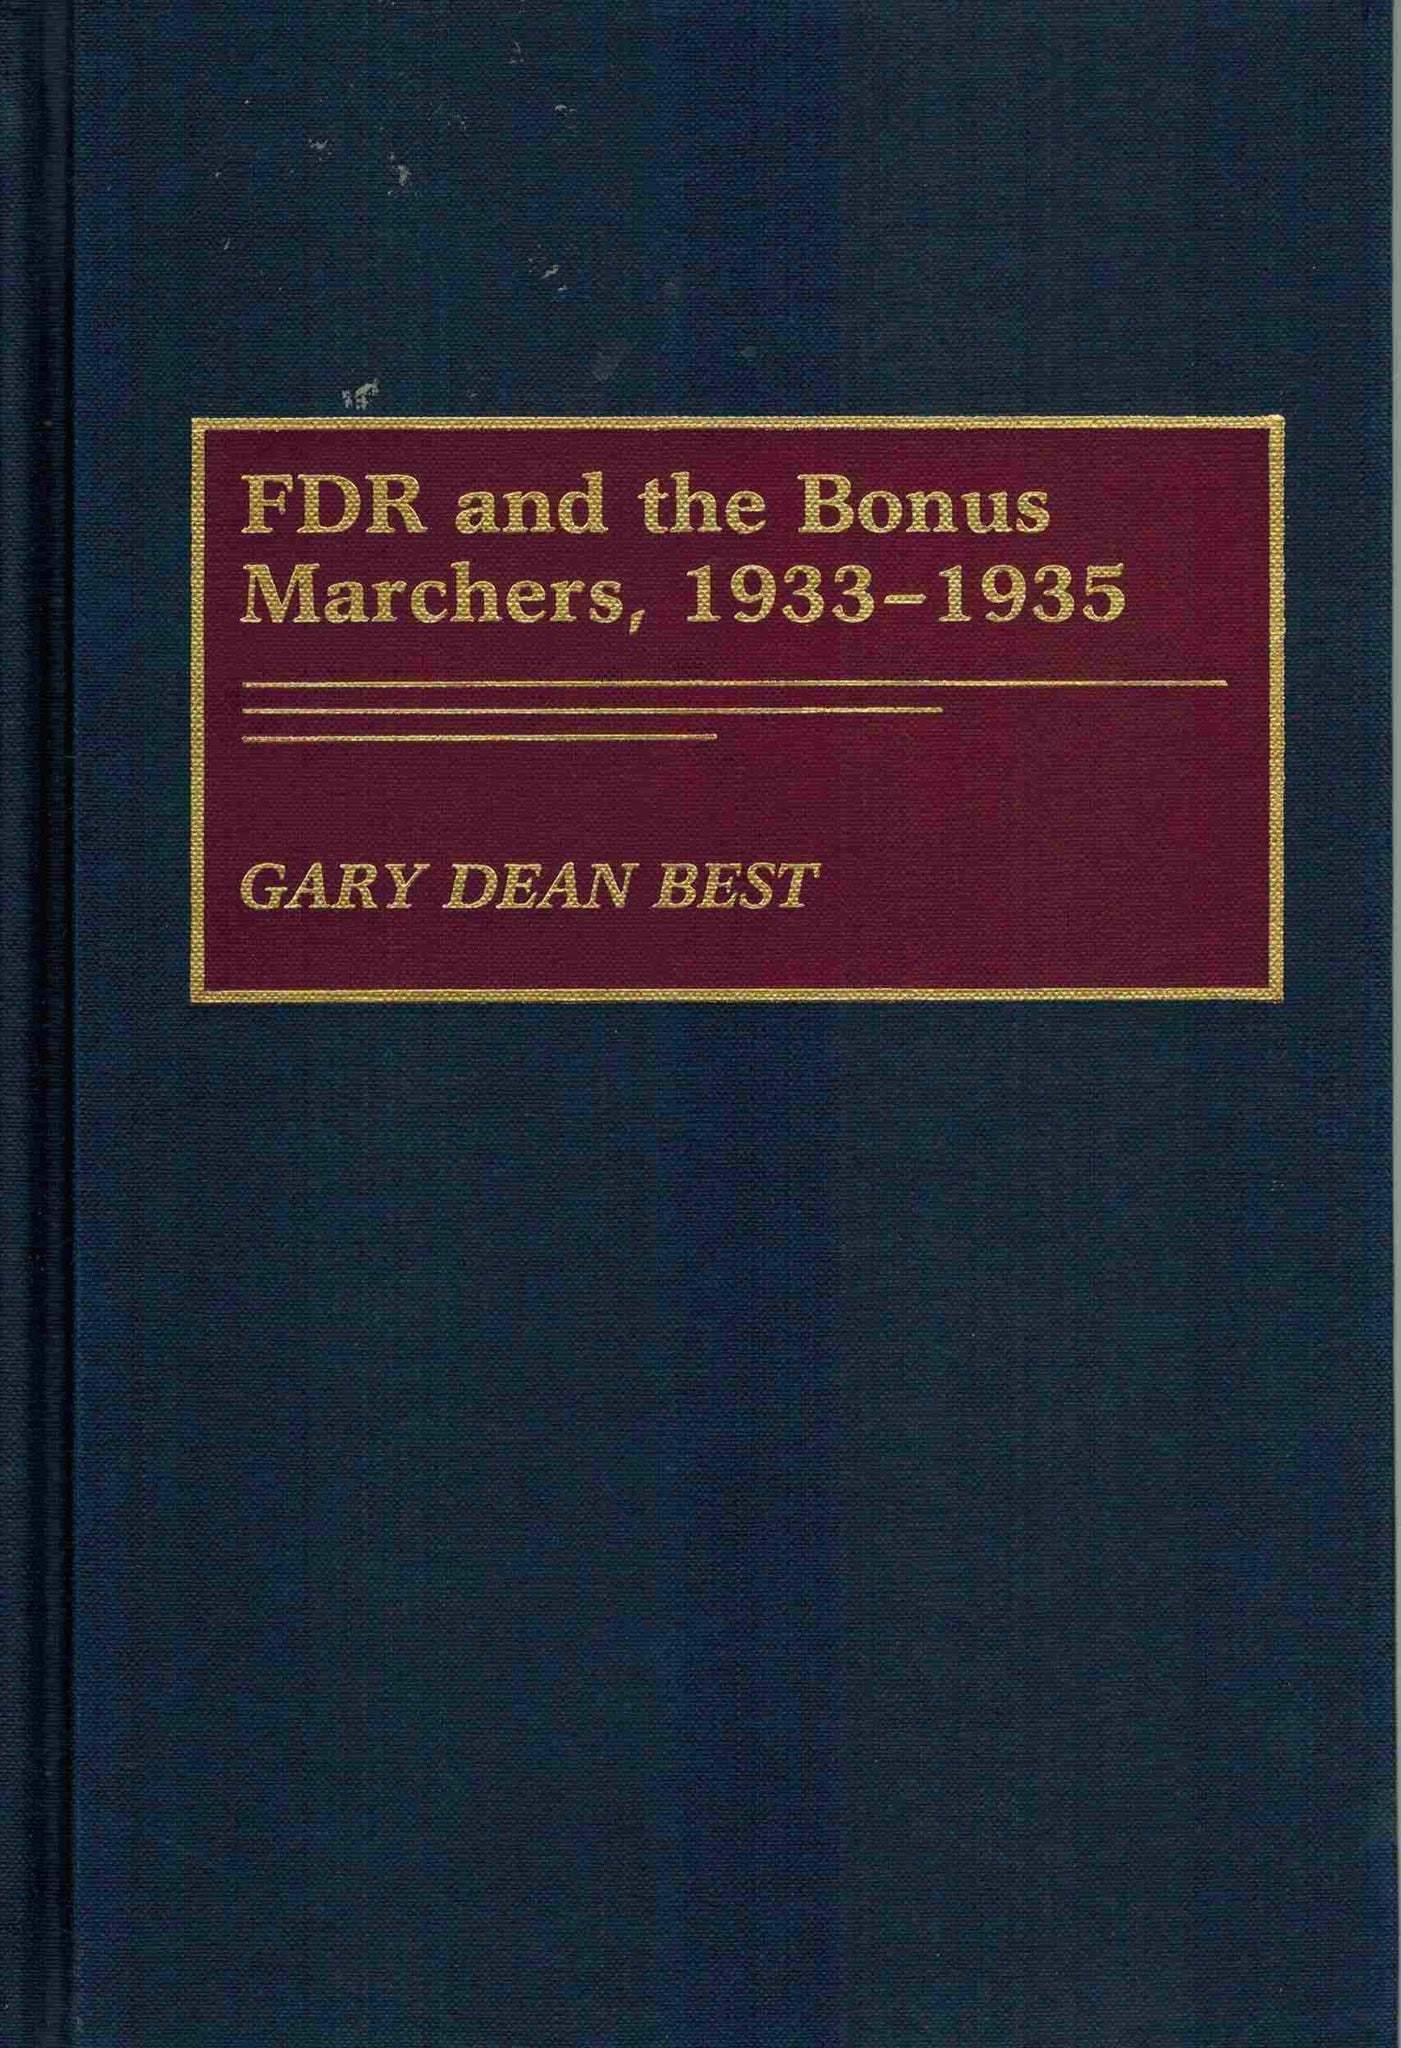 FDR and the Bonus Marchers, 1933-1935 - books-new